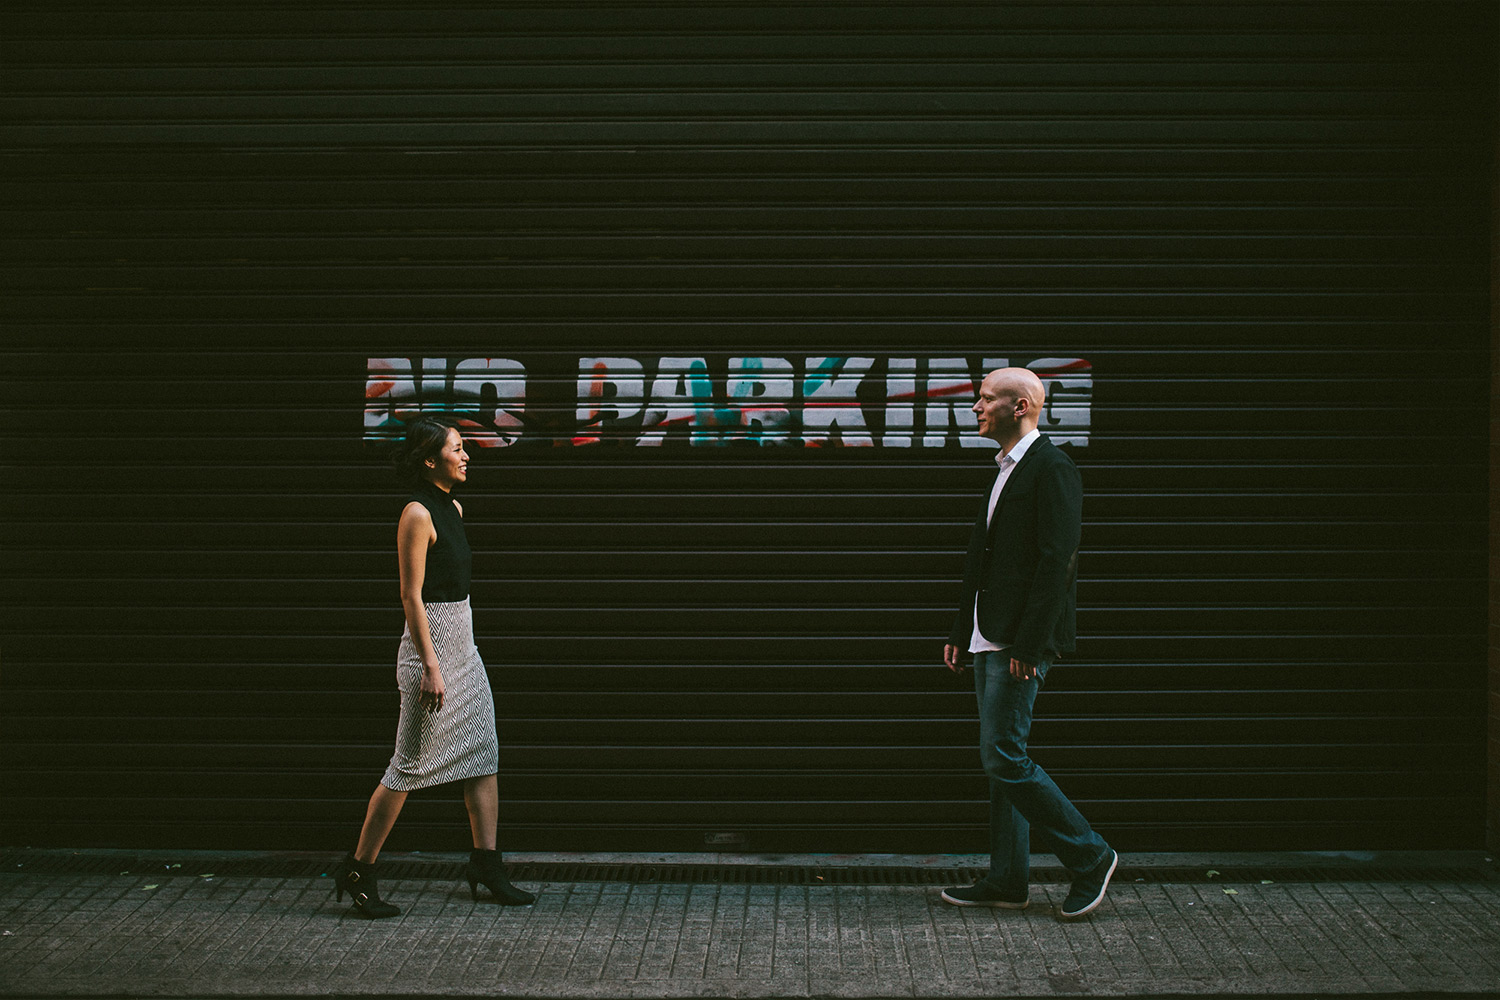 Elaine-Stephen-Engagement-Melbourne-Quirky-Urban-Engagement-Session-Wedding-Photography-10